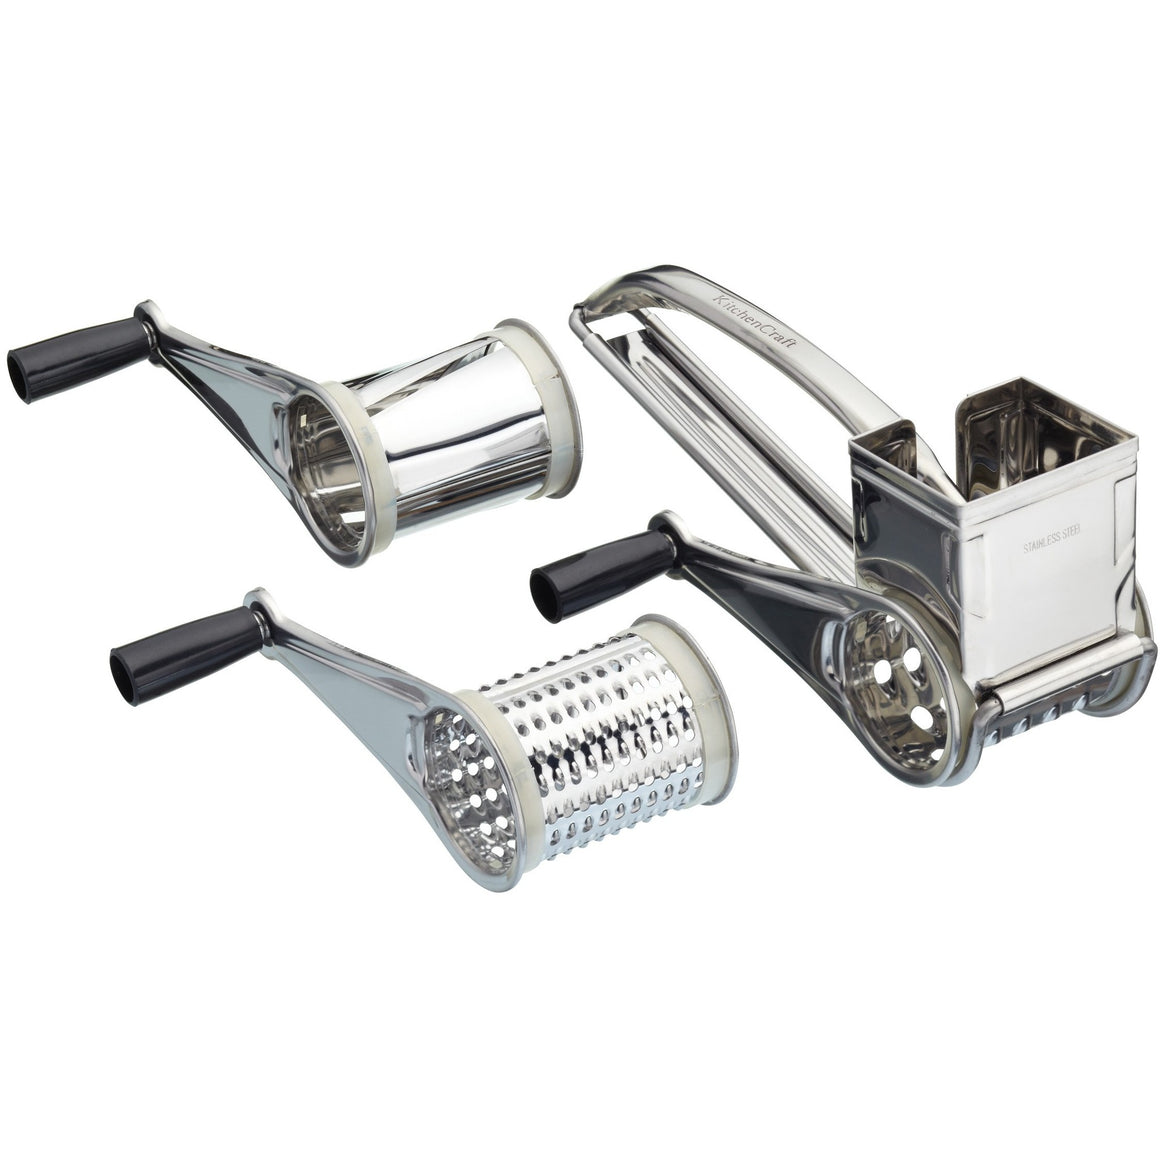 Kitchen Craft Grater With 3 Drums